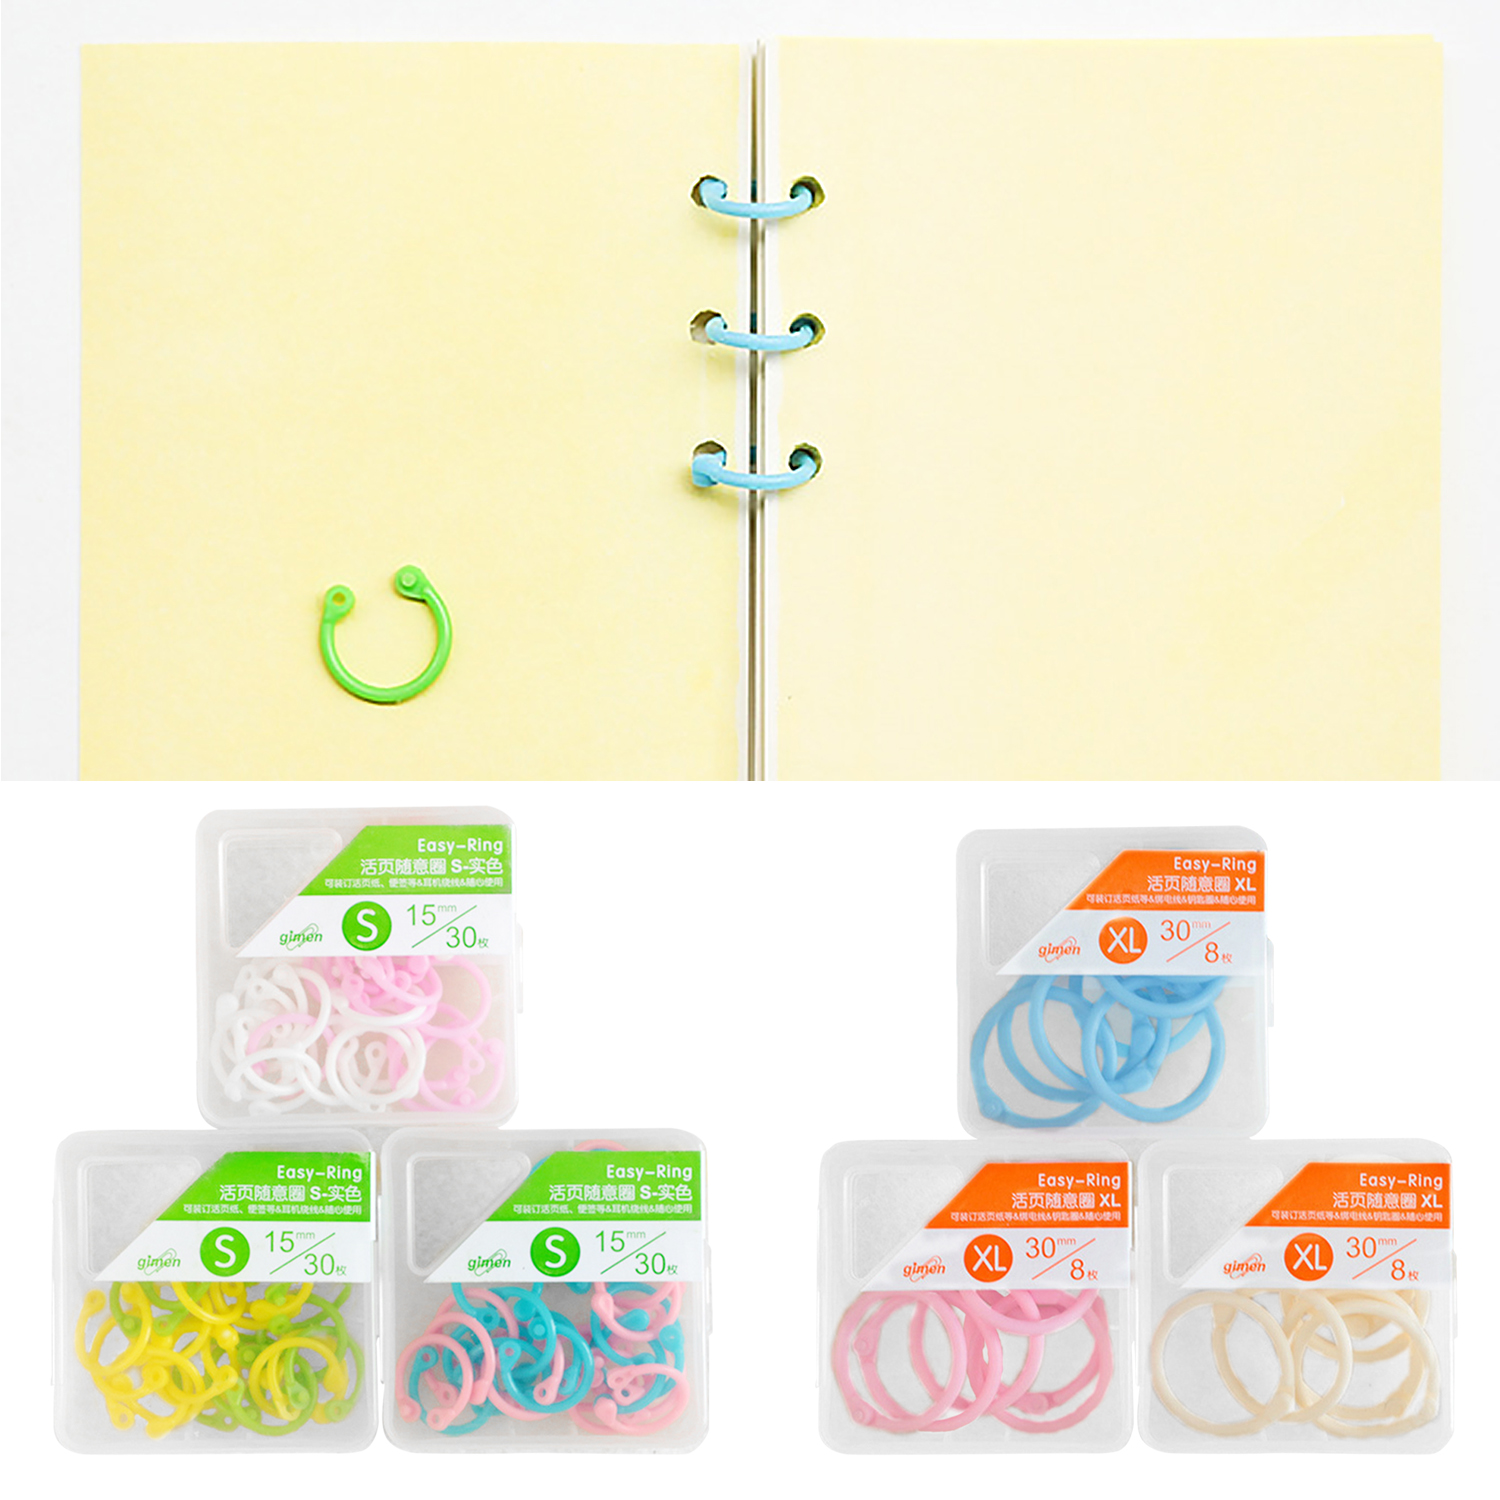 3 Packs Plastic Binder Snap Rings For Loose Leaf Paper Cards Photo Album Menu Book Home School Office Use Random Colors